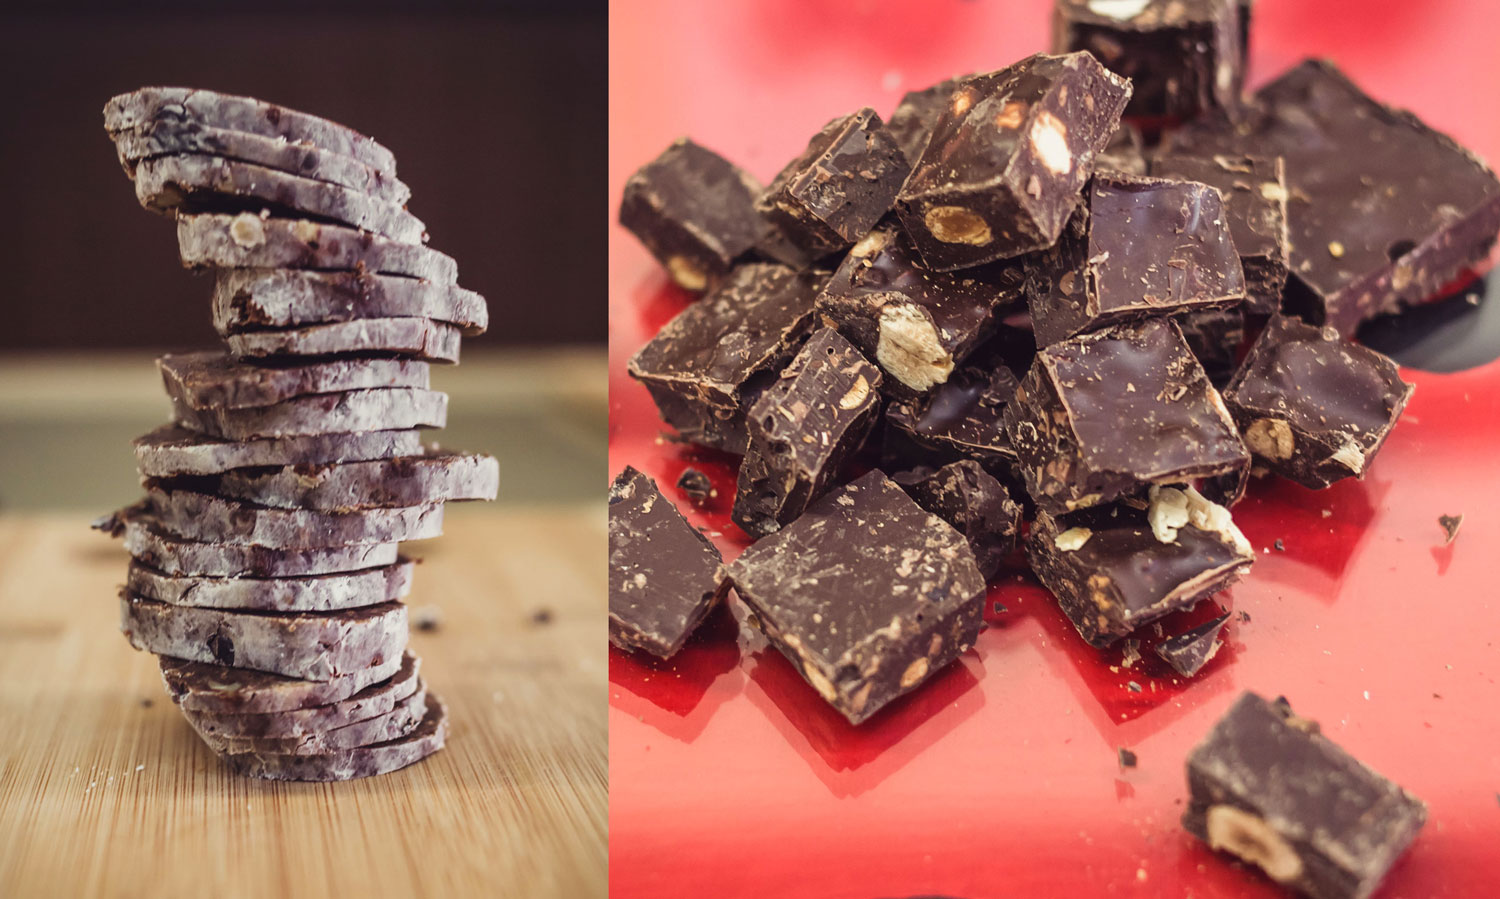 DUDE-SWEET-CHOCOLATE-RESTAURANT-SWEETS-PLANO-MAGAZINE-SALAMI-BARK